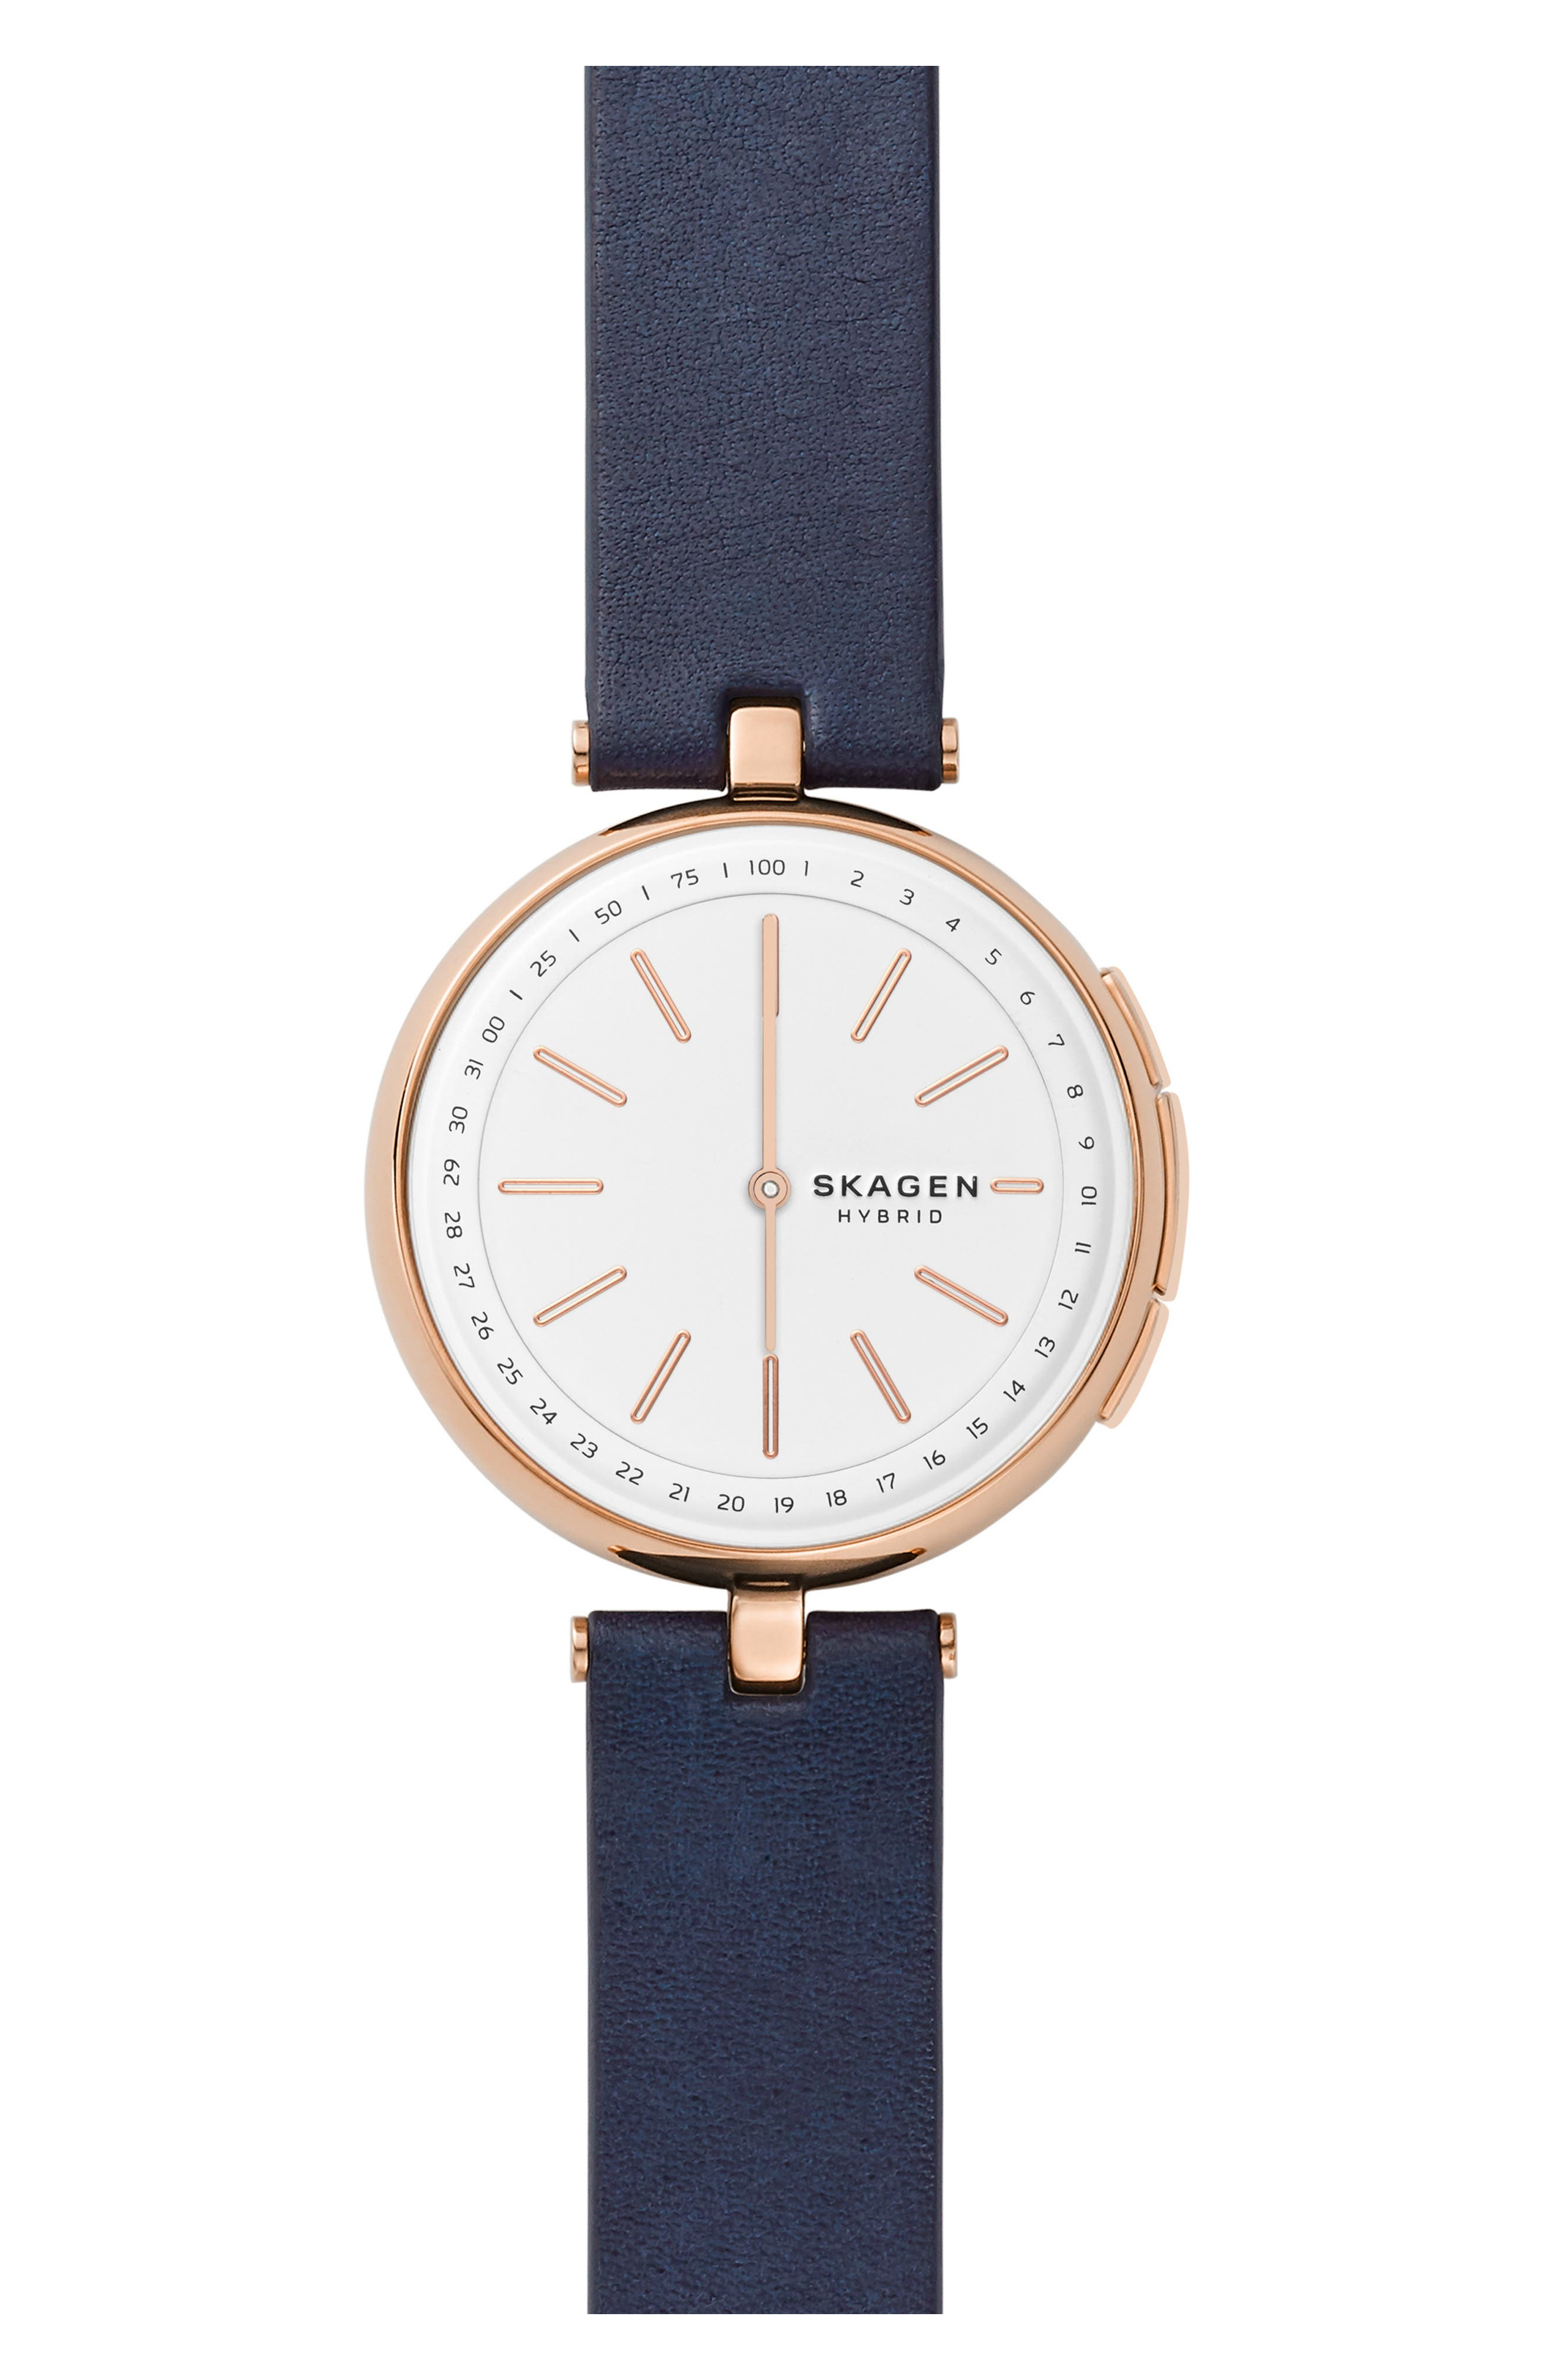 SKAGEN SIGNATUR CONNECTED T-BAR LEATHER STRAP HYBRID SMART WATCH, 36MM